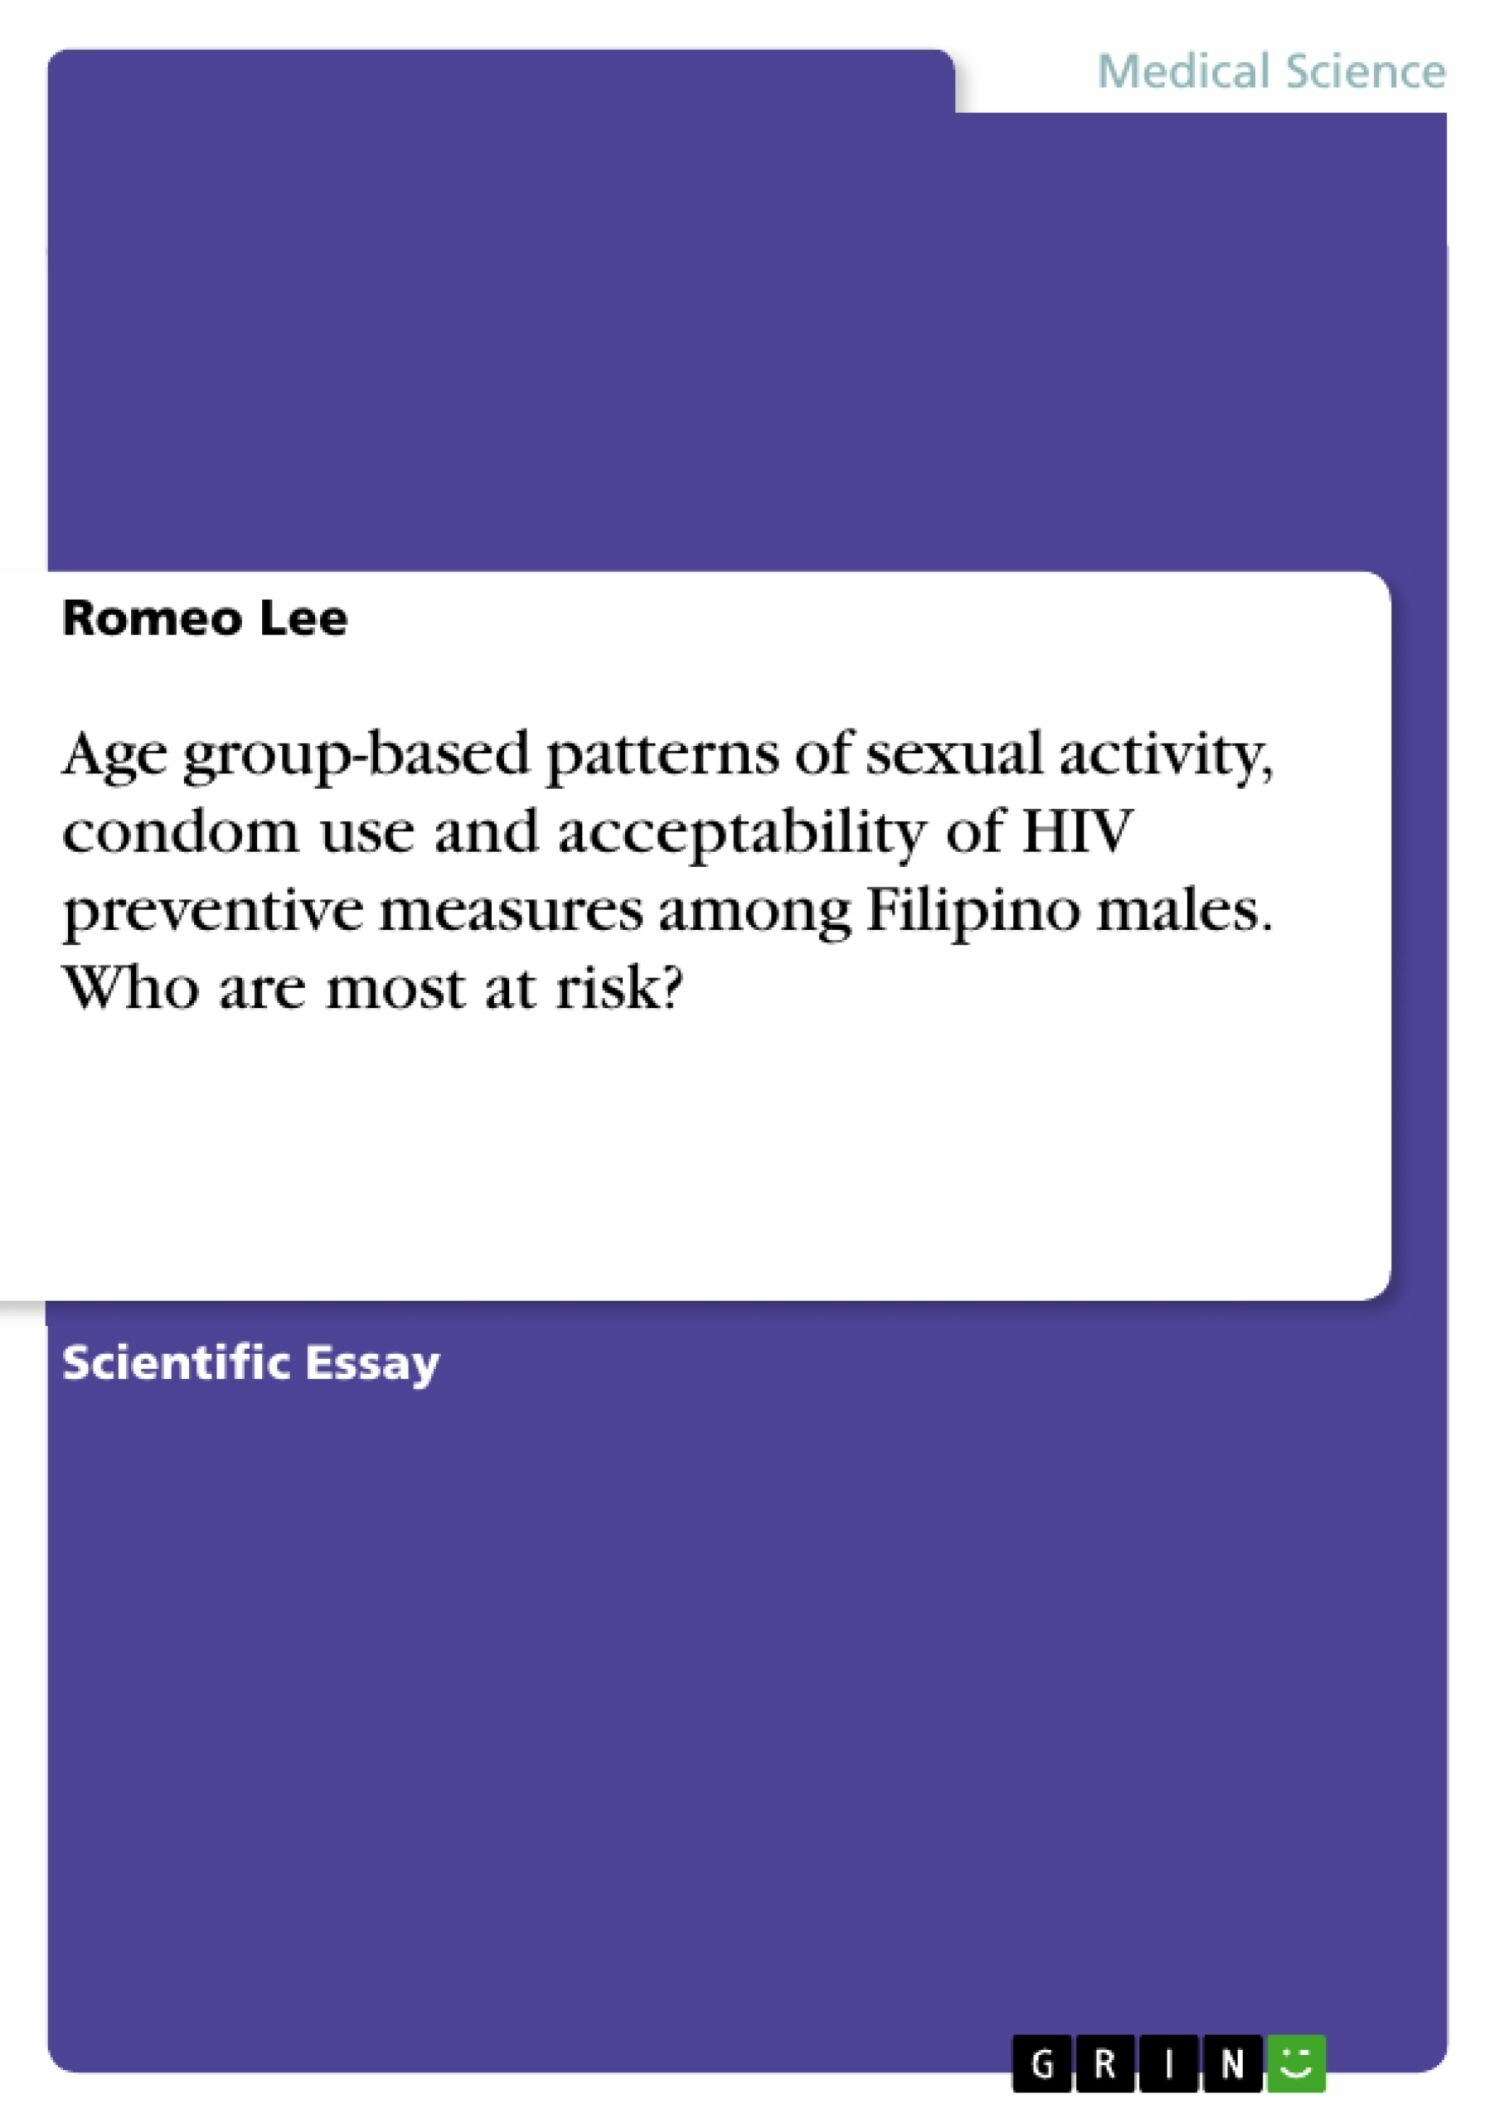 Age group-based patterns of sexual activity, condom use and acceptability of HIV preventive measures among Filipino males. Who are most at risk?